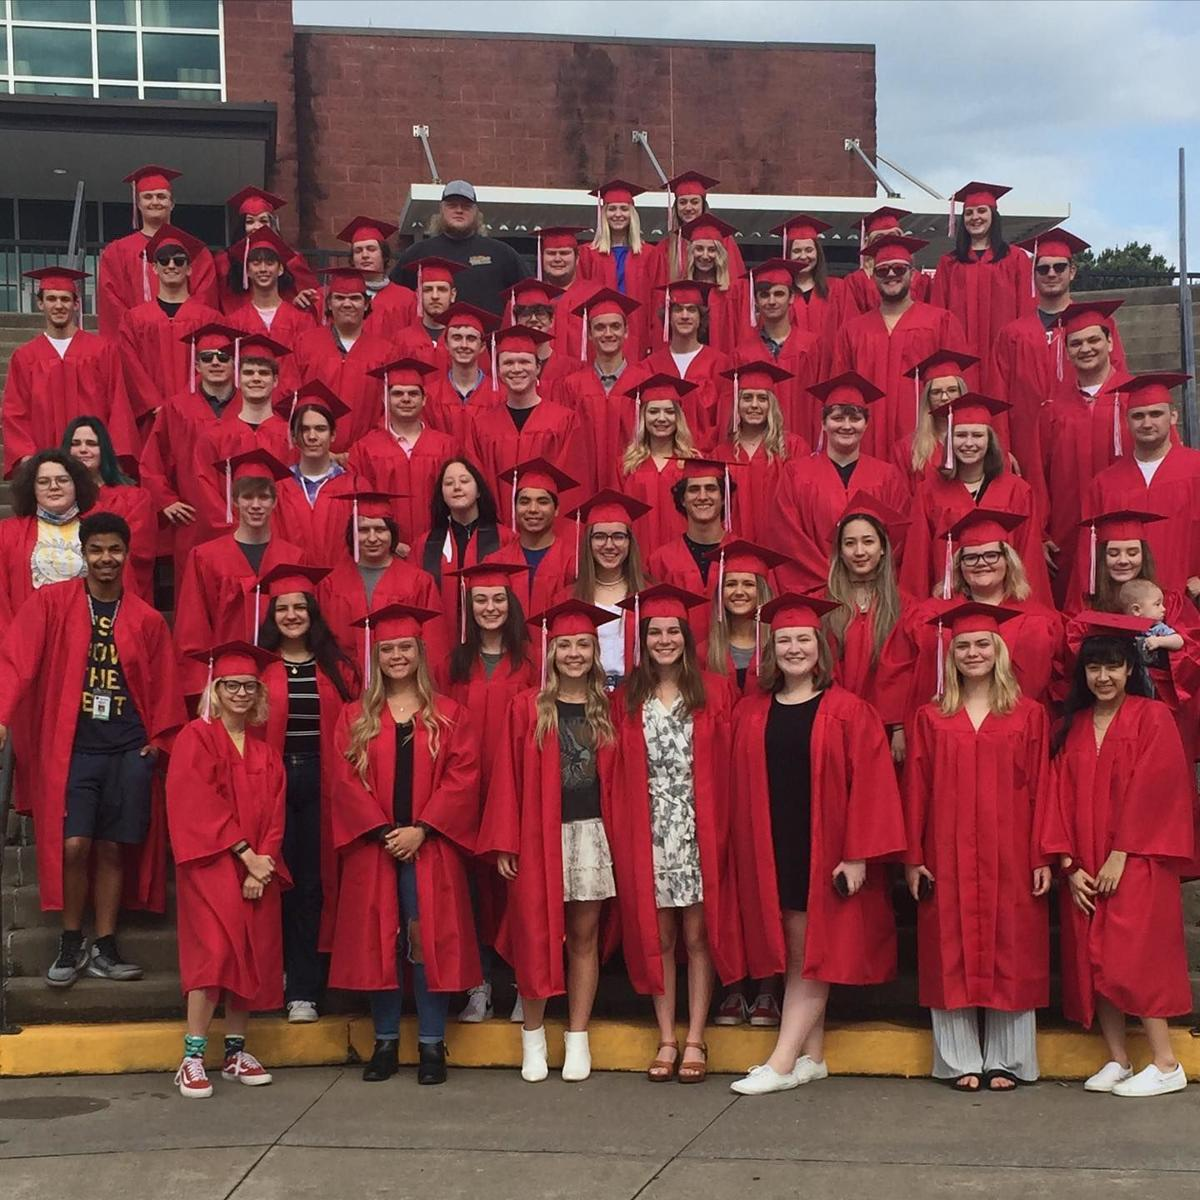 The Heber Springs High School Class of 2021